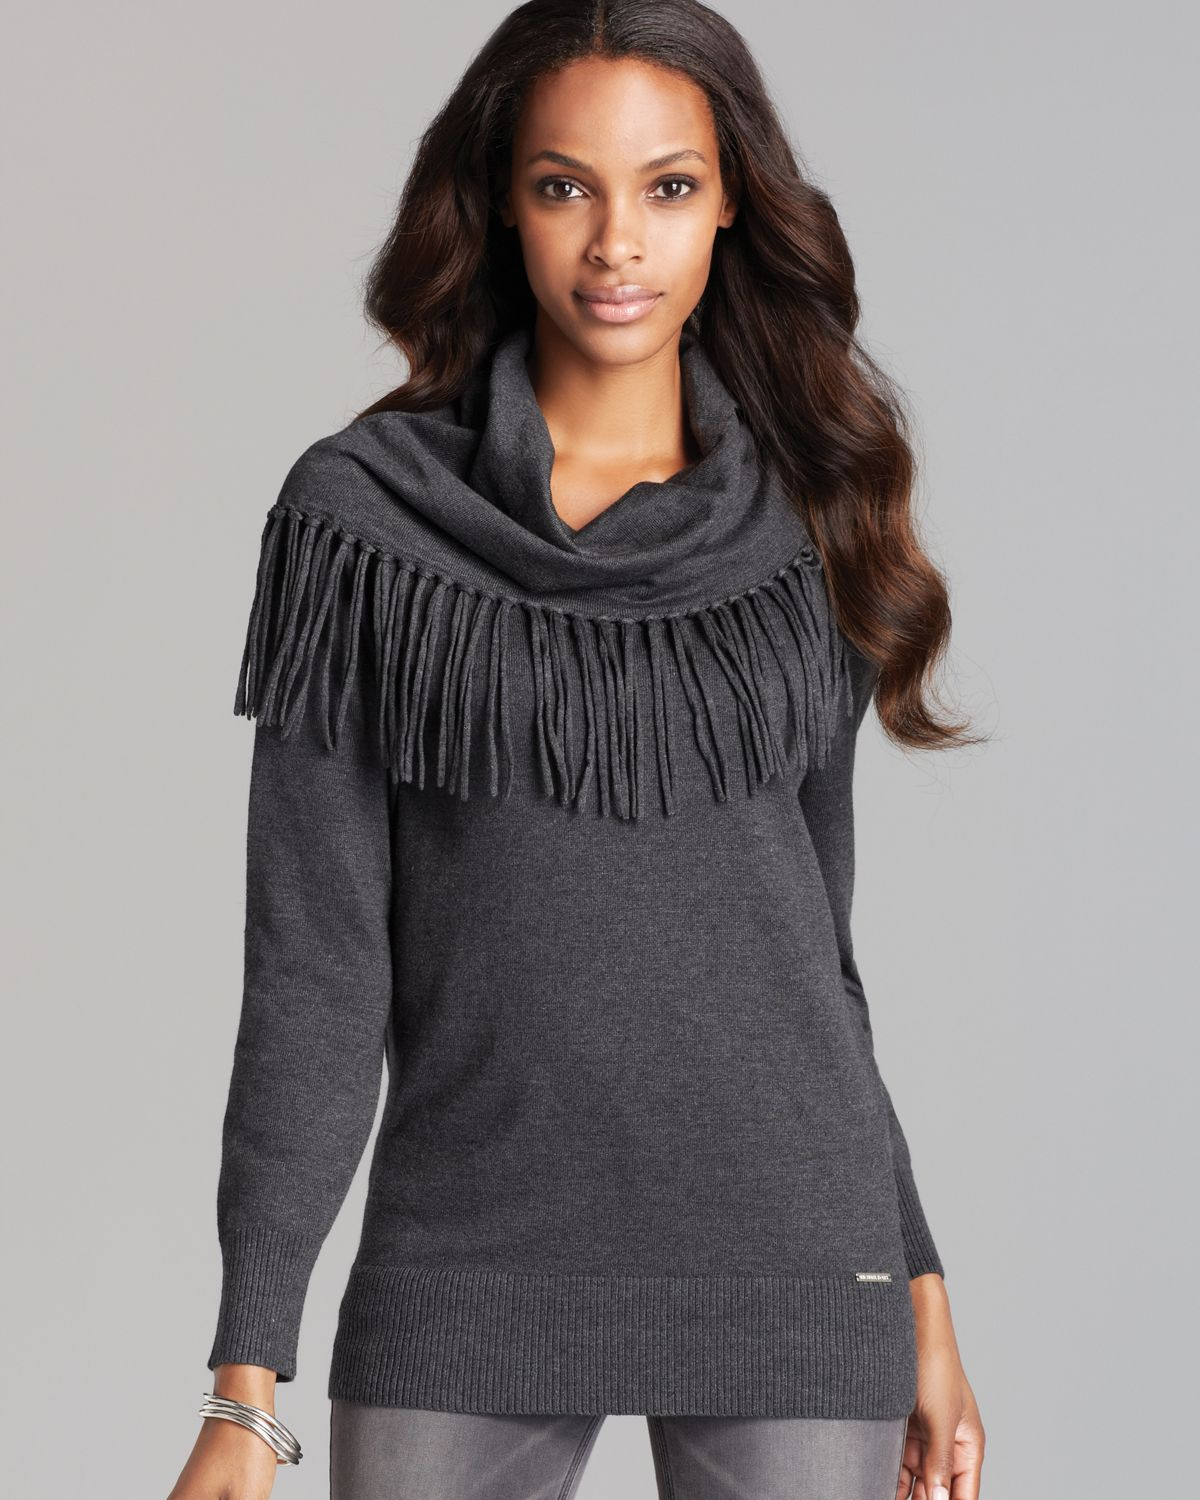 Michael michael kors Fringe Cowl Neck Sweater in Gray | Lyst